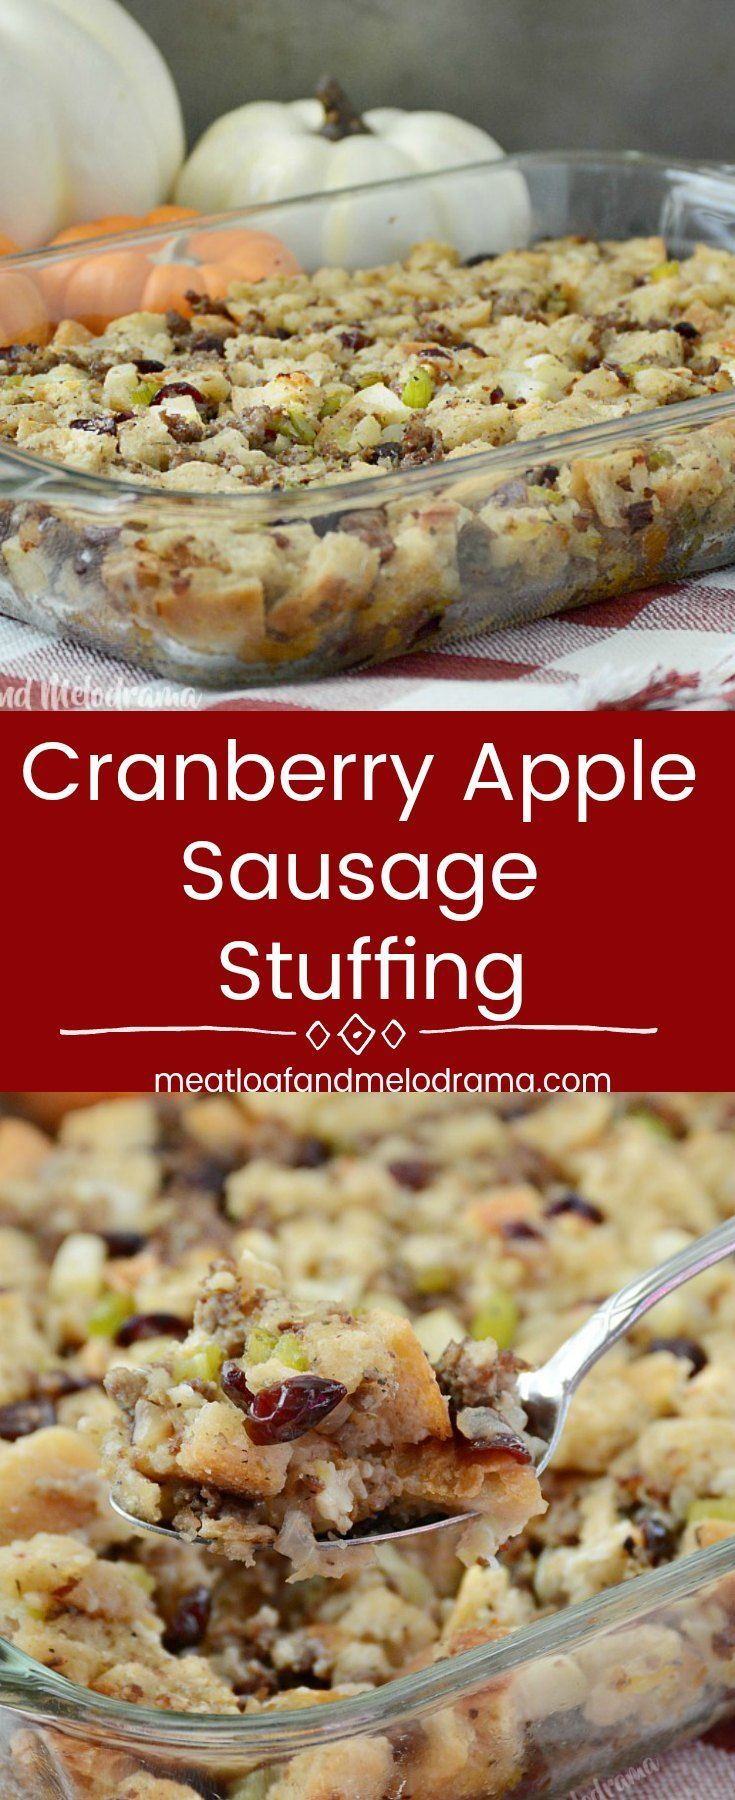 Cranberry Apple Sausage Stuffing - An easy holiday side dish recipe for Thanksgiving or Christmas made with homemade toasted rosemary bread cubes, dried cranberries, sausage and apples. from Meatloaf and Melodrama #ThanksgivingRecipes #christmas  #holidays #sidedish